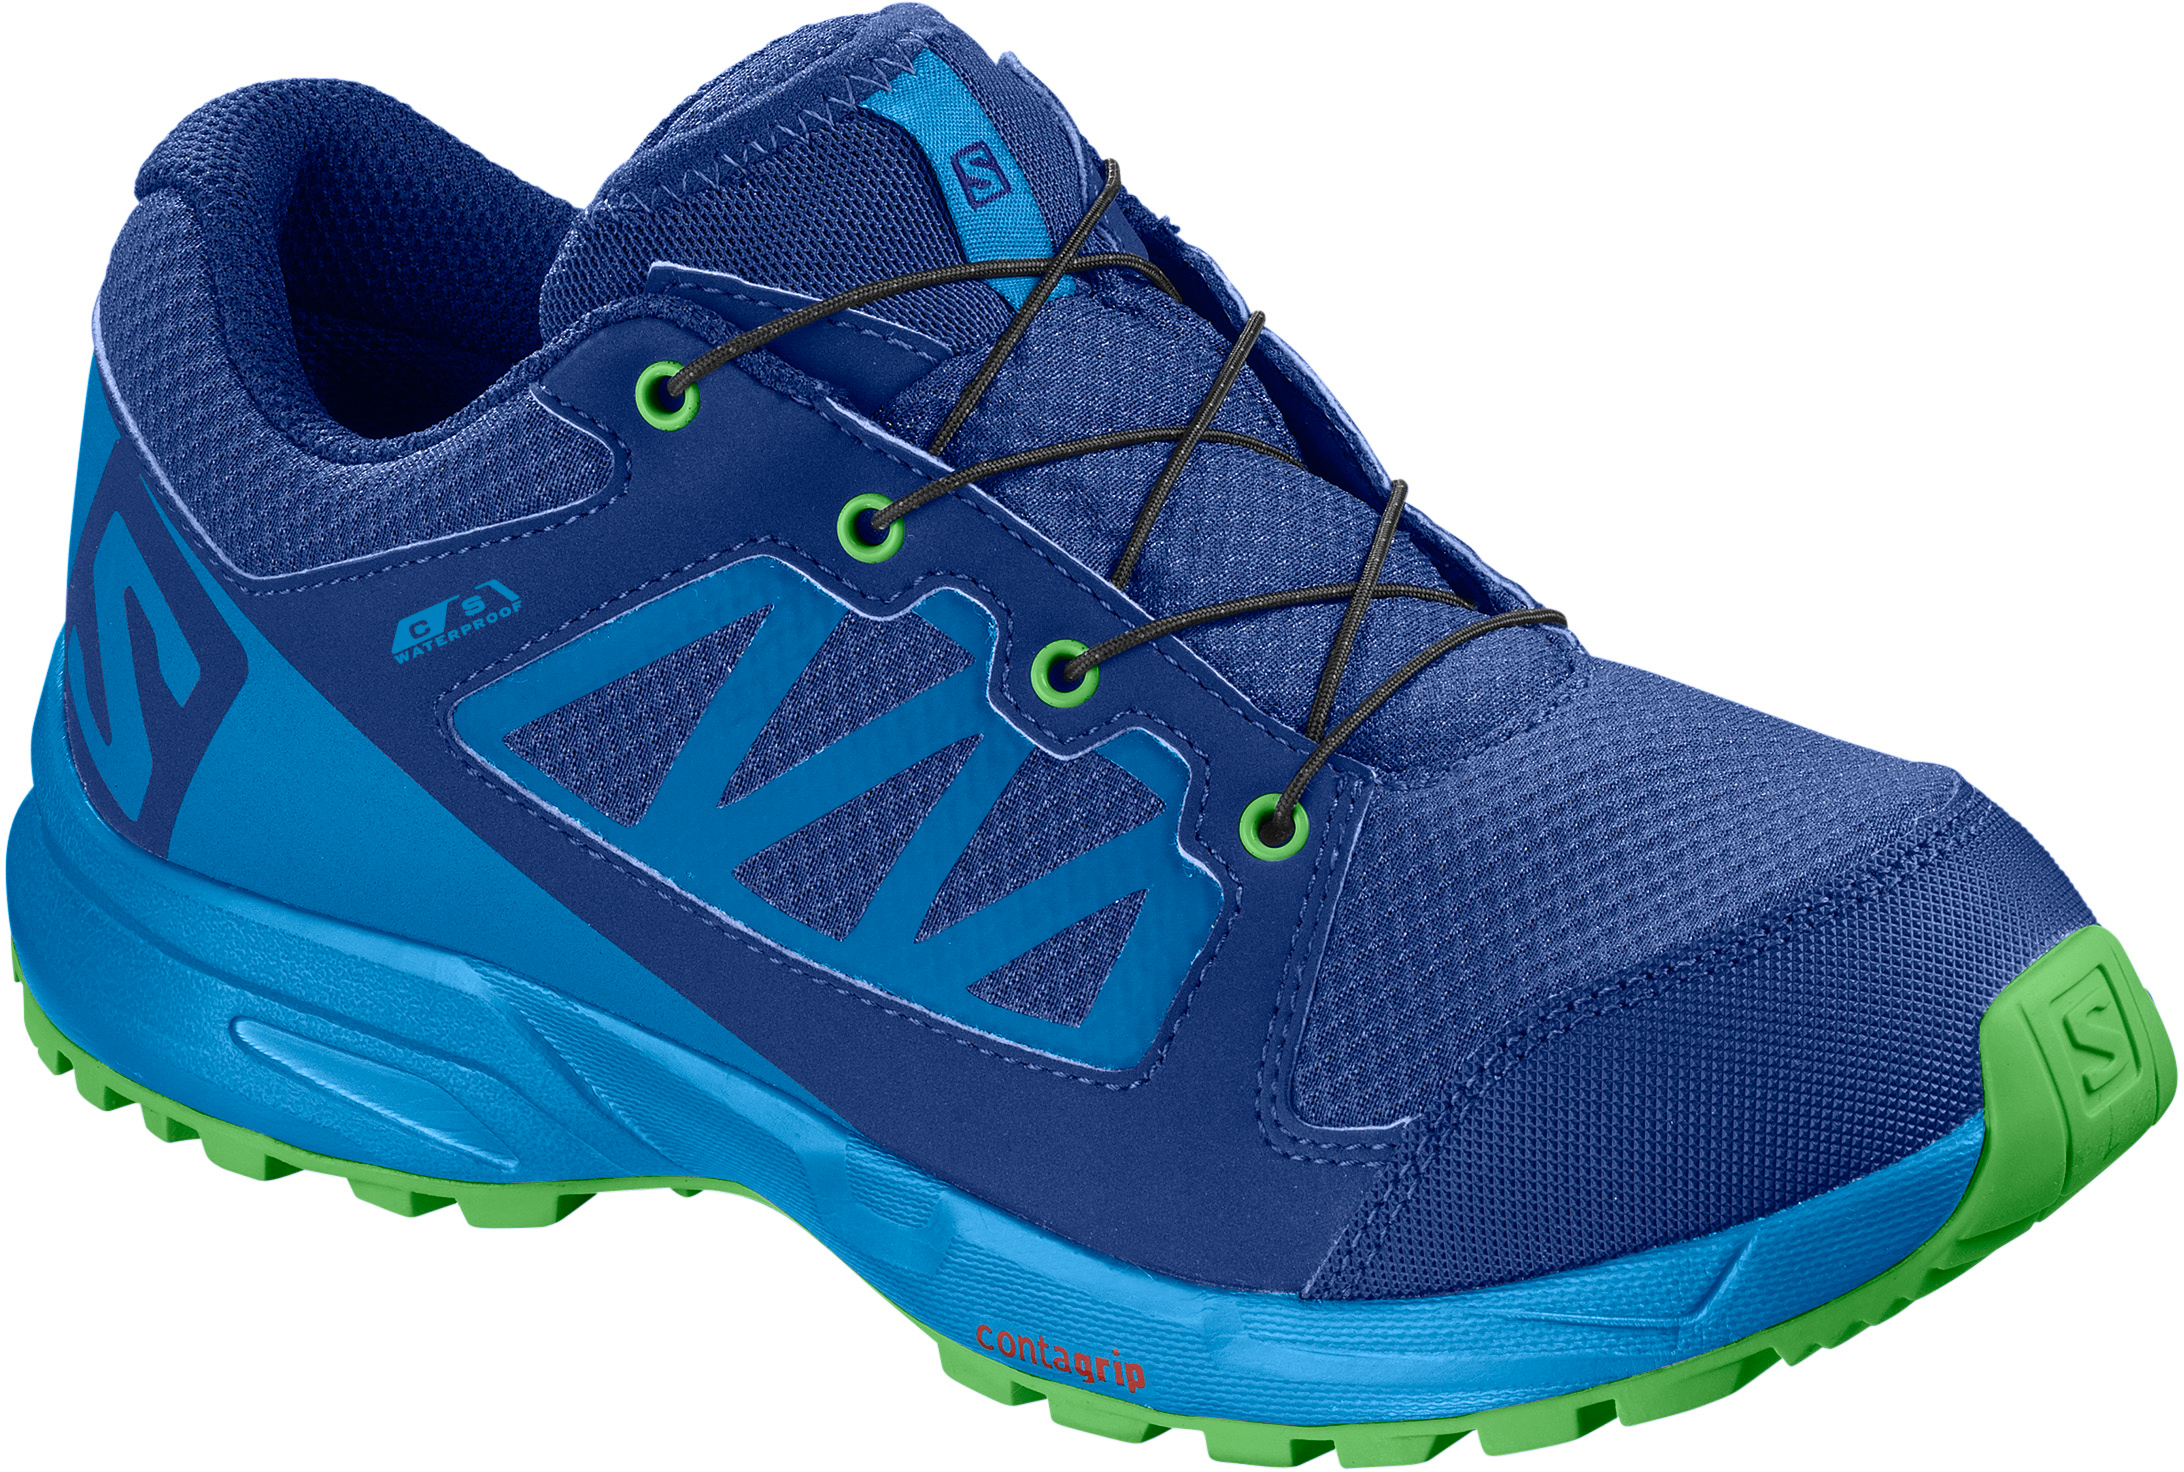 SALOMON JR XA ELEVATE CSWP JUNIOR WATERPROOF SHOES